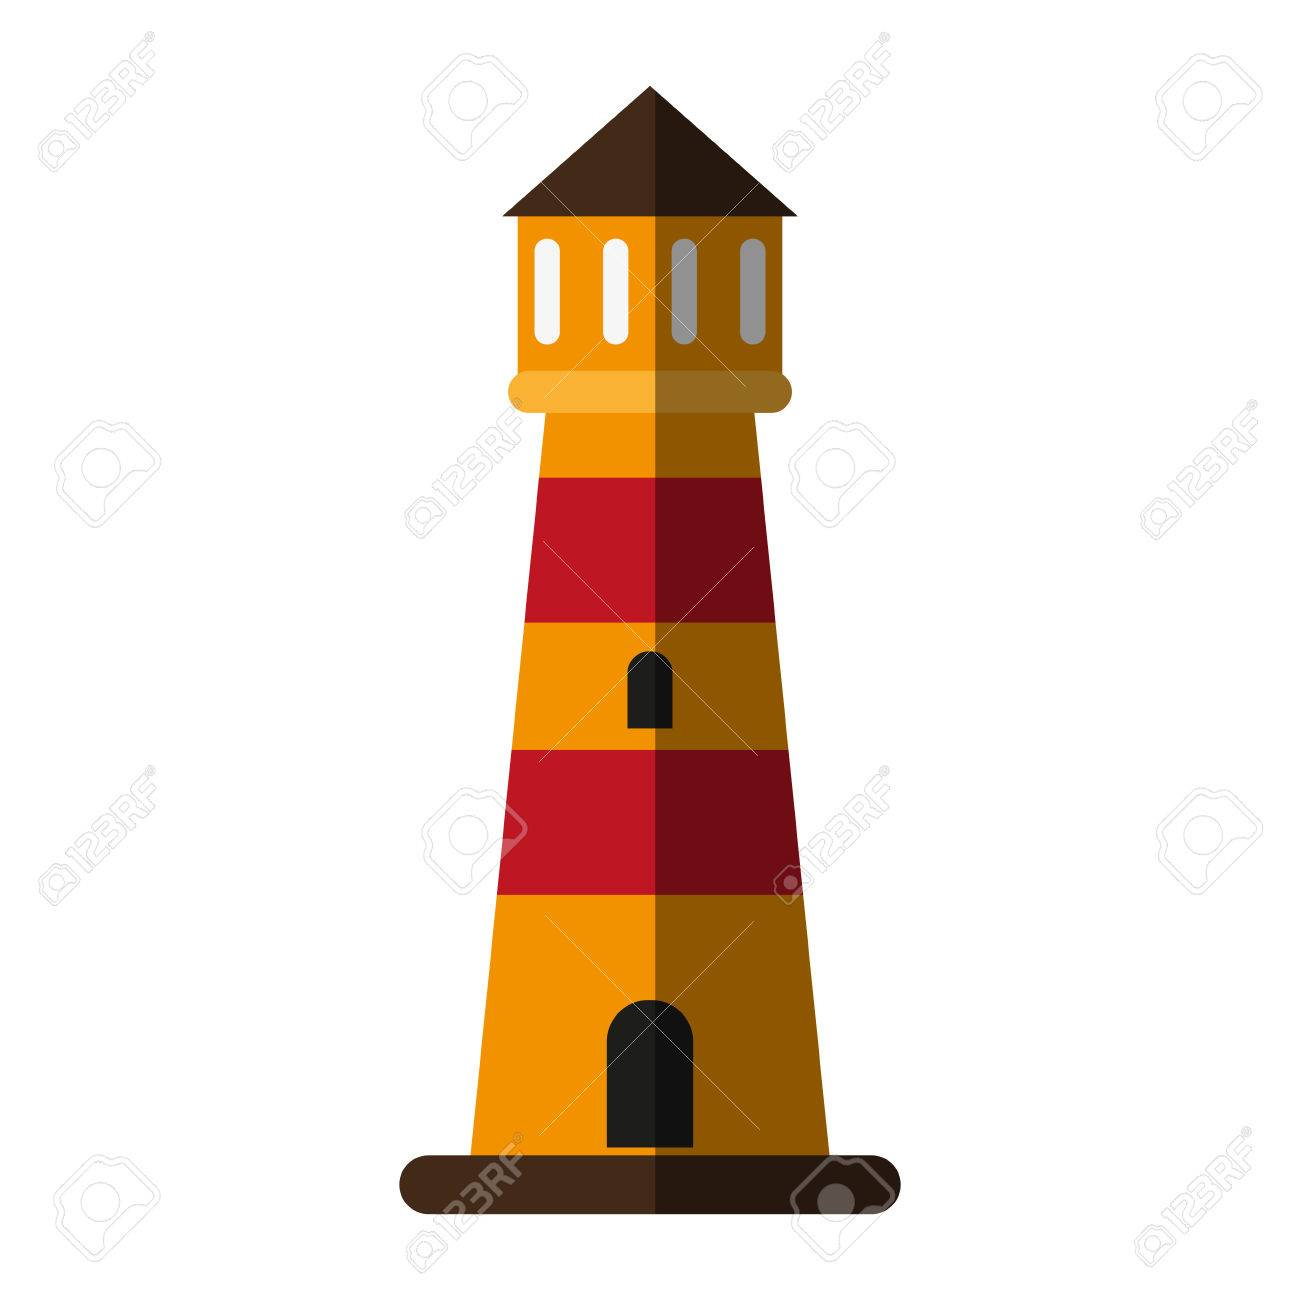 striped lighthouse icon image vector illustration design royalty rh 123rf com lighthouse vector file lighthouse vector file